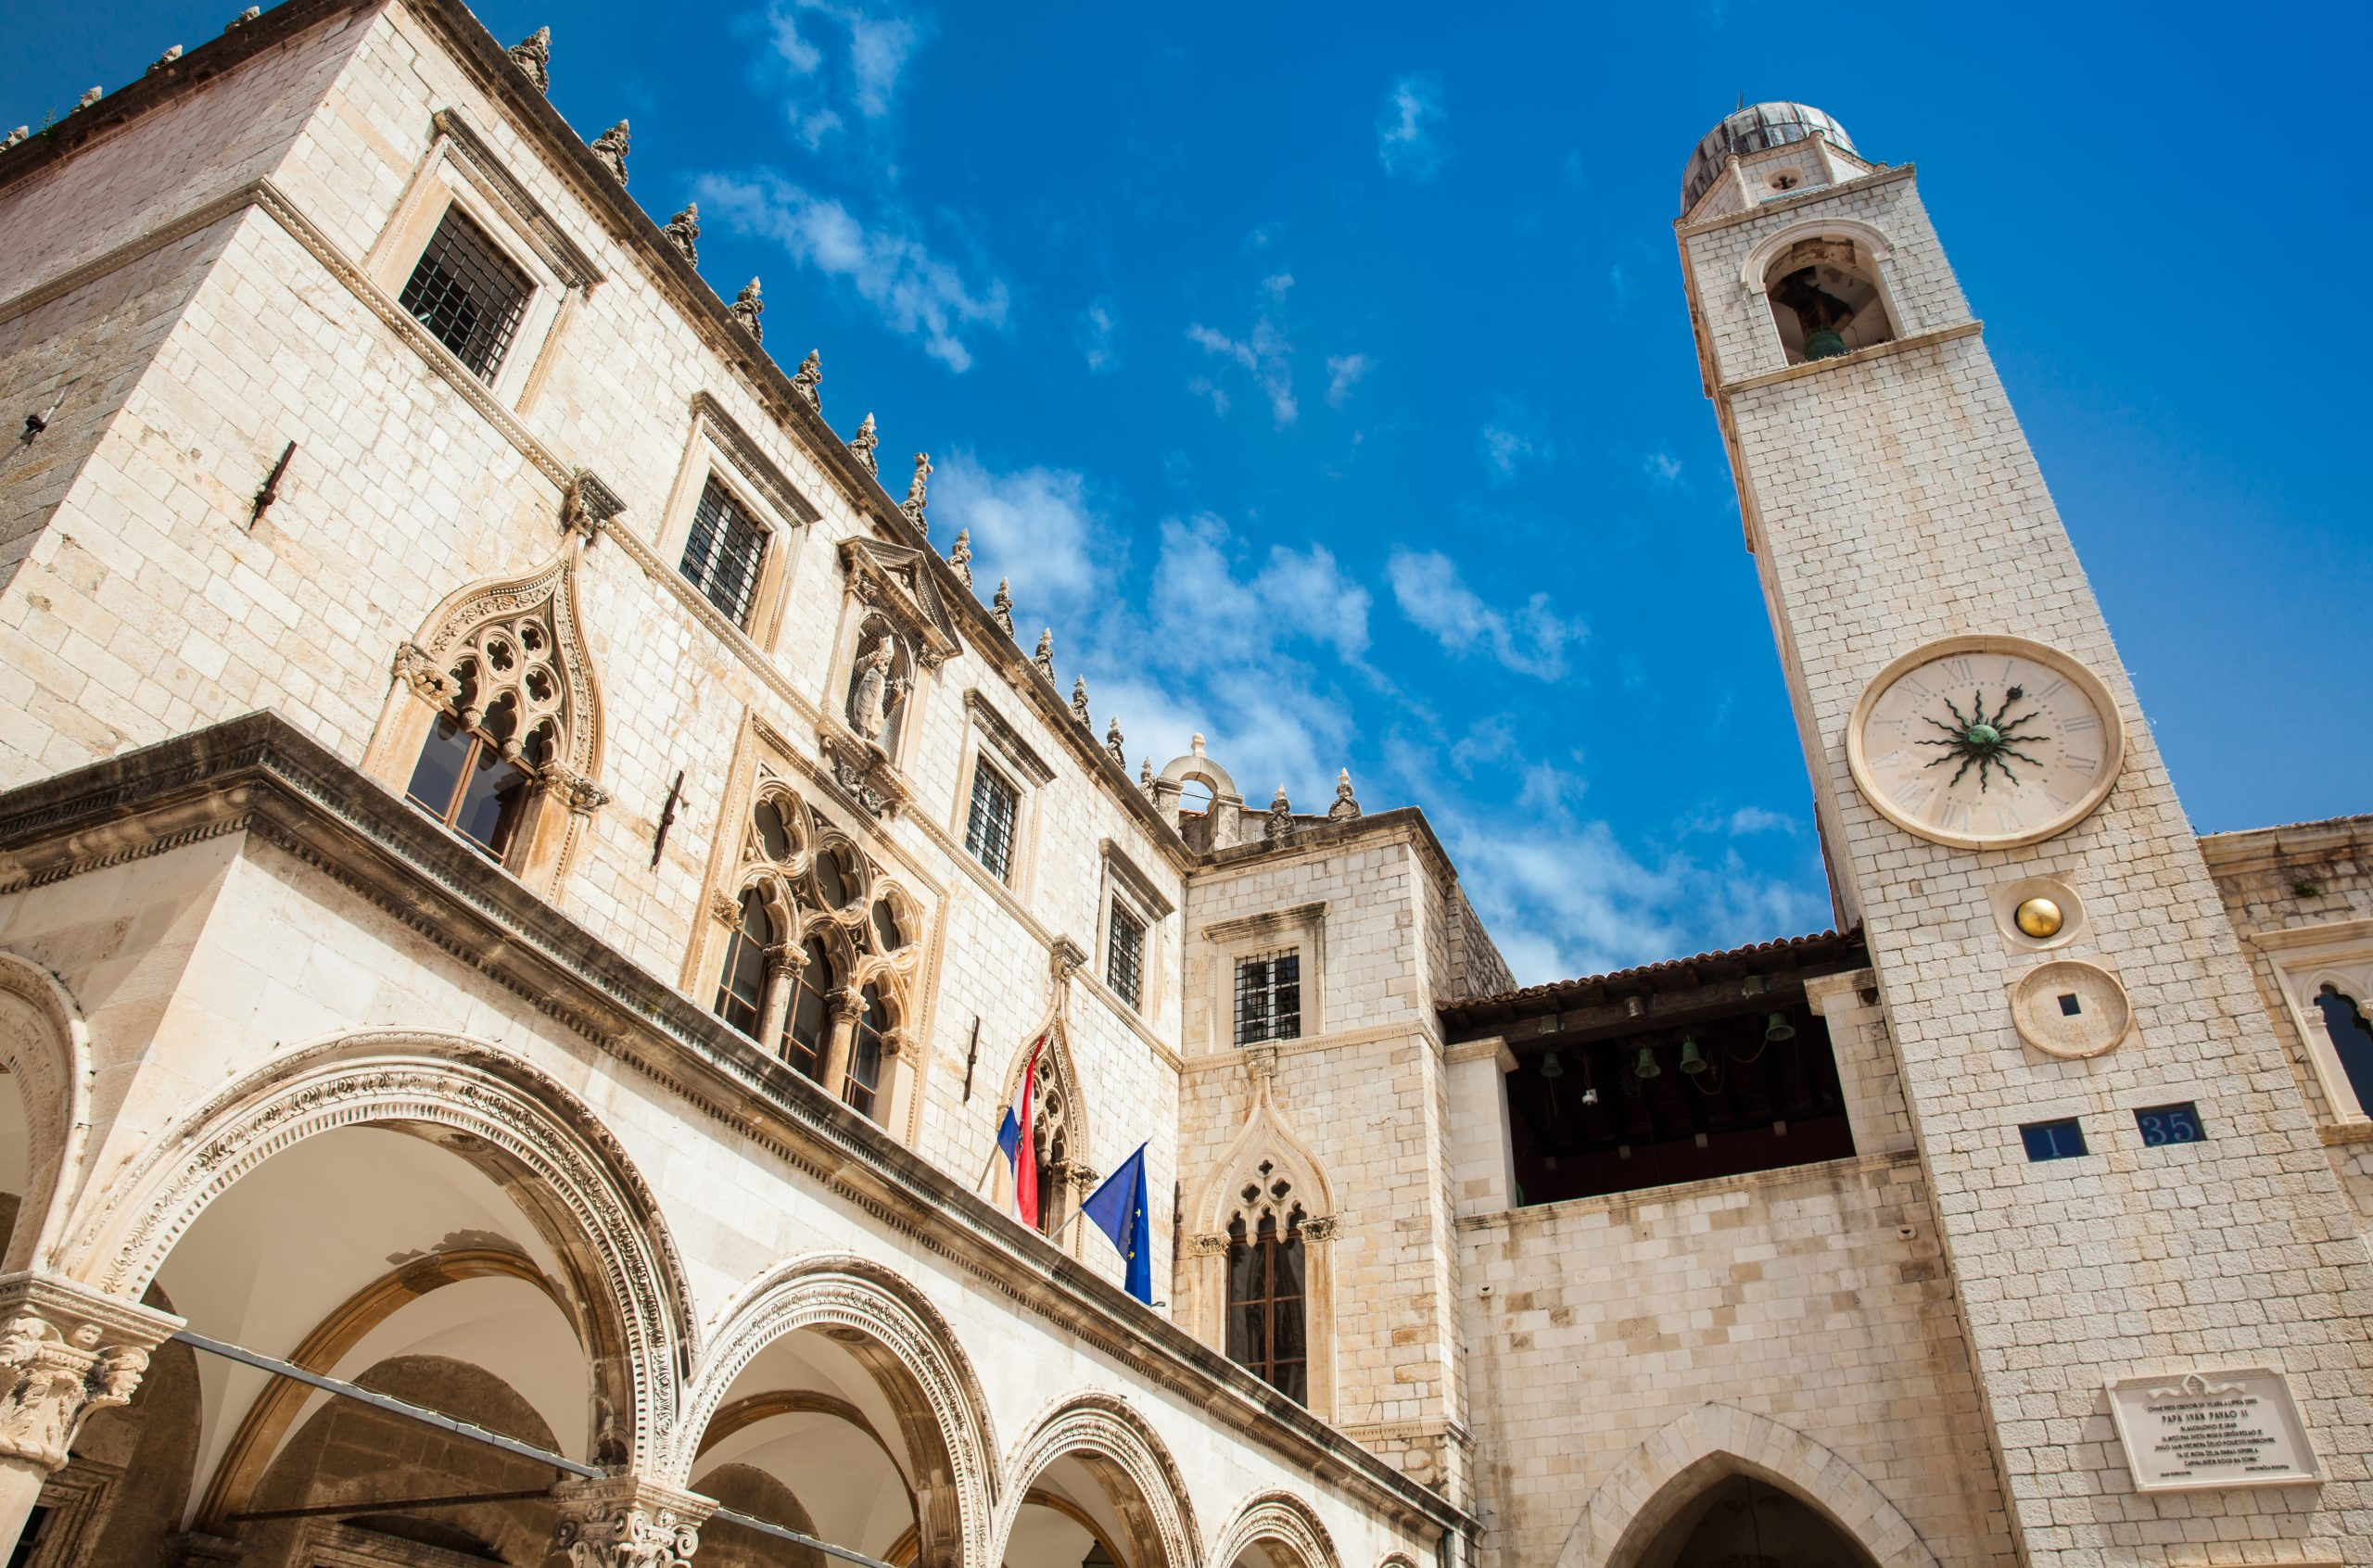 Explore The Famous Sponza Palace During The Dubrovnik Game Of Thrones And History Walking Tour